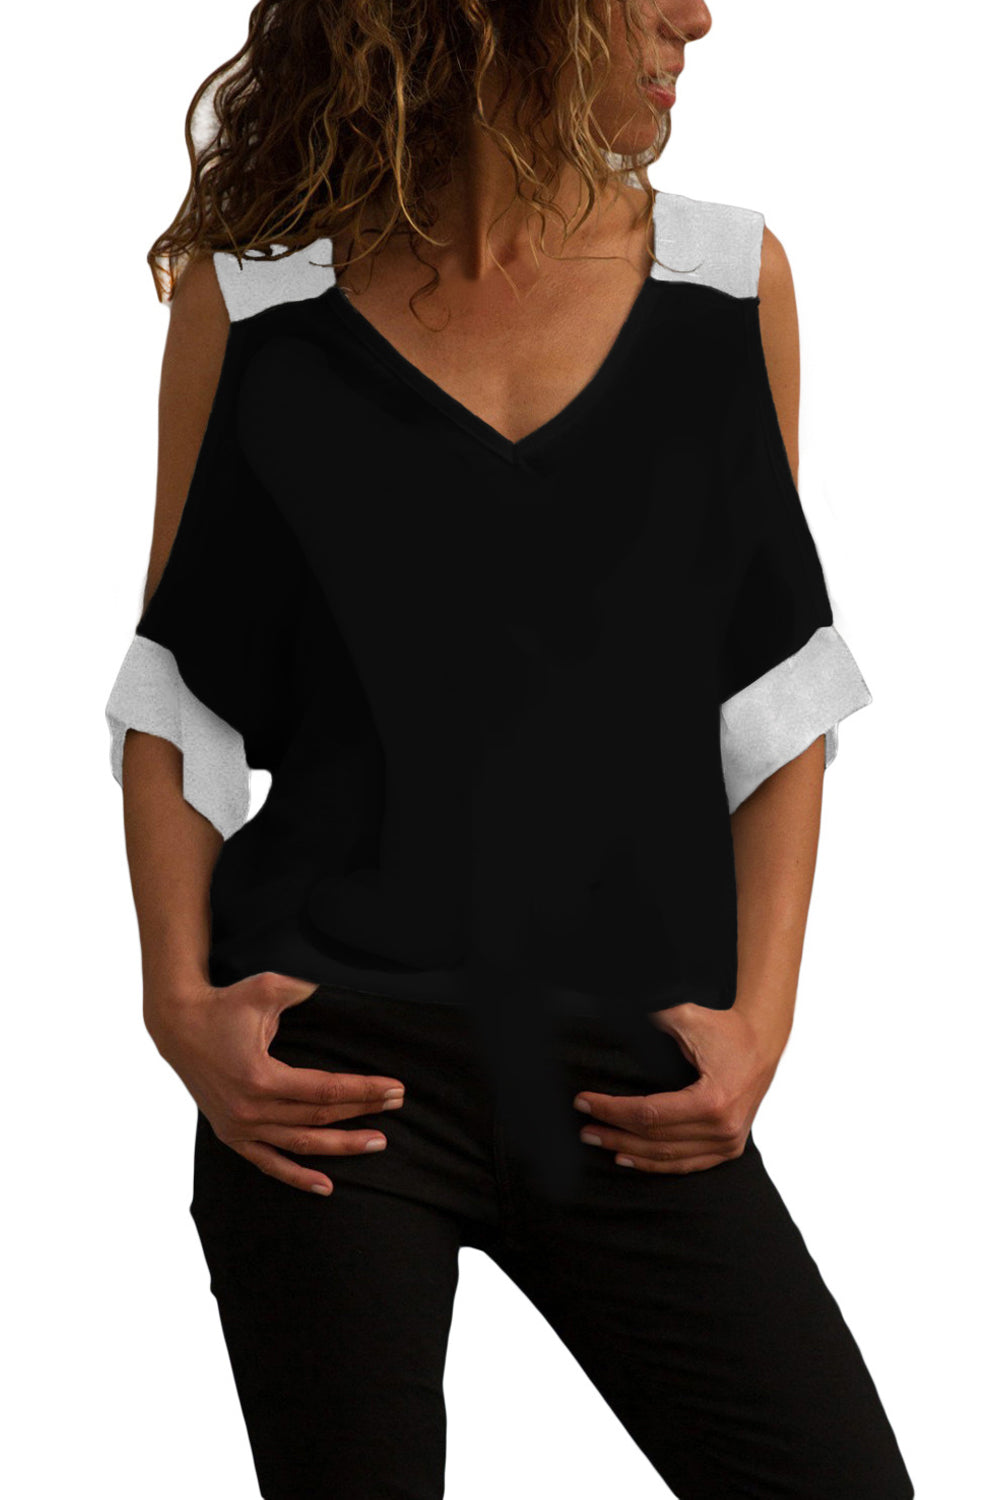 Z| Chicloth Black White Color Block Cold Shoulder Top